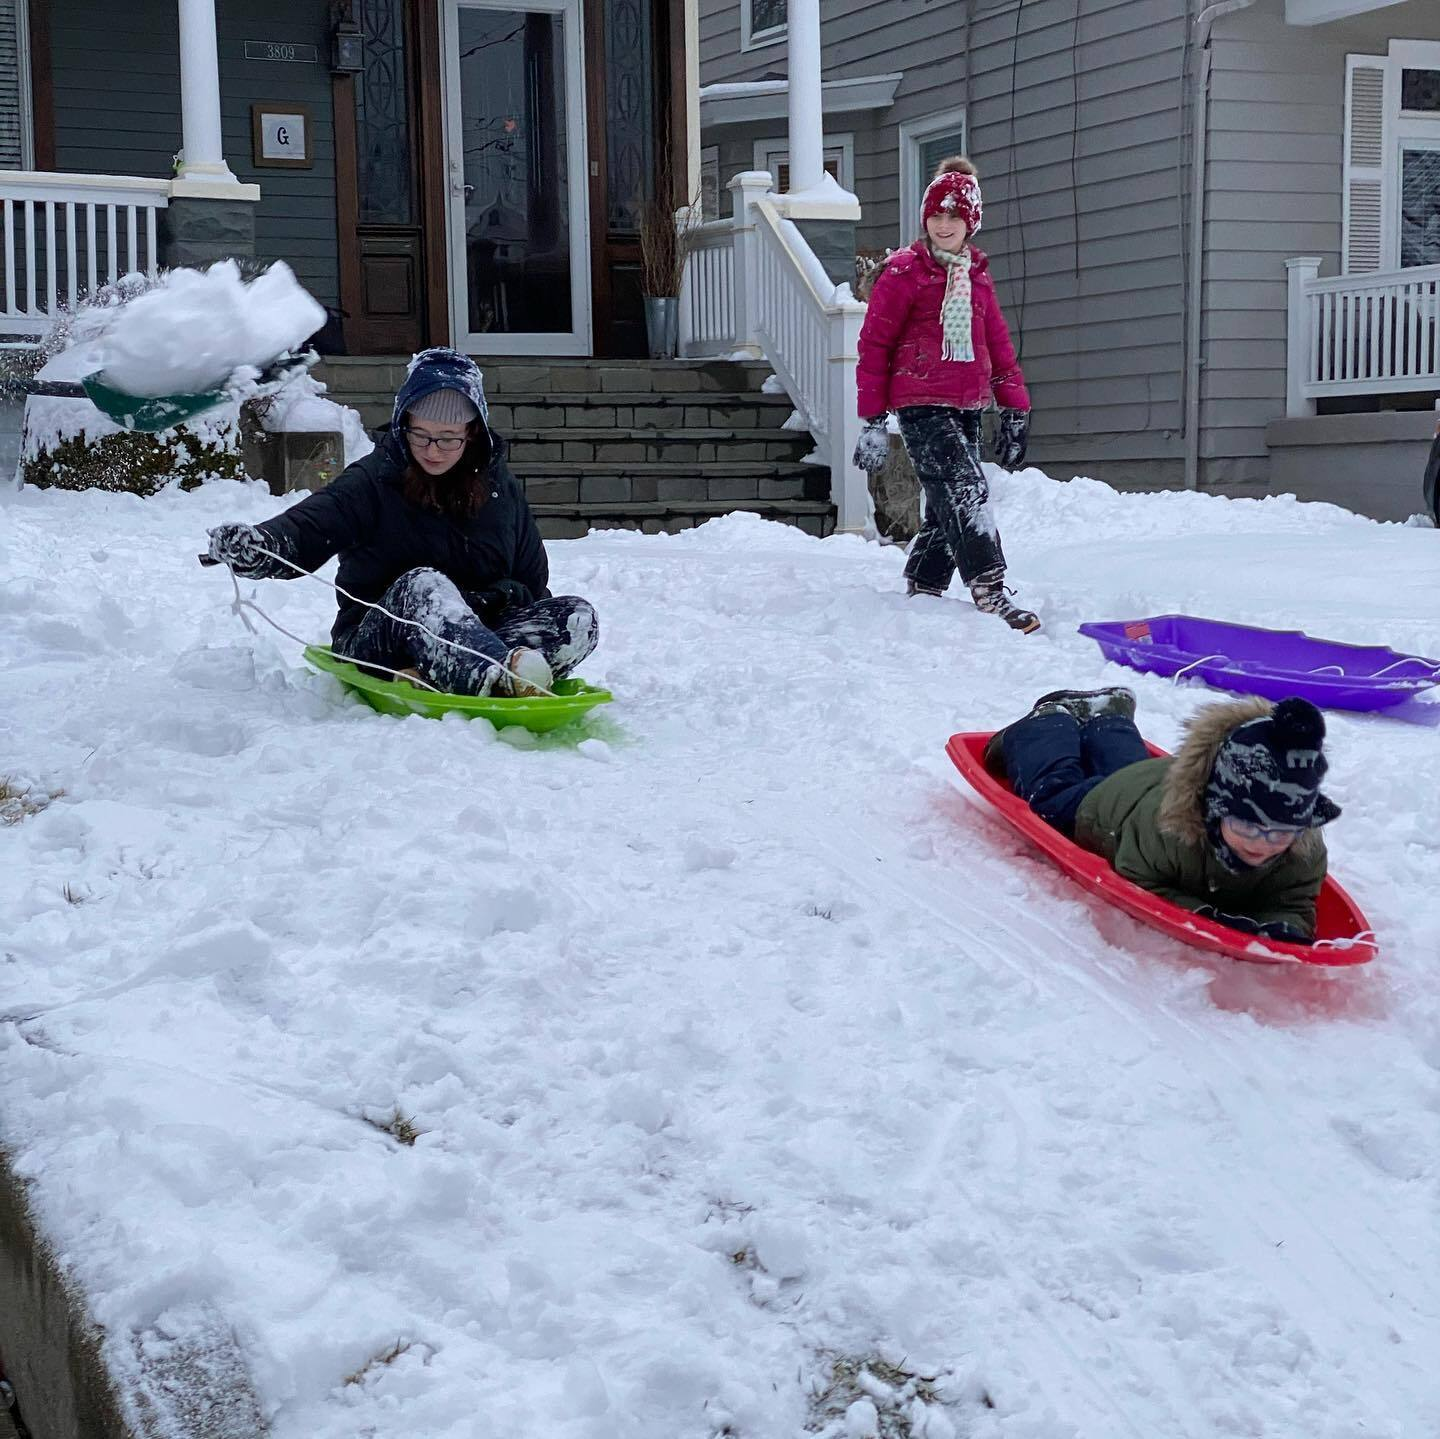 4-year-old Finley, 15-year-old Emma and 11-year-old Tessa enjoy a sled run in Norwood.